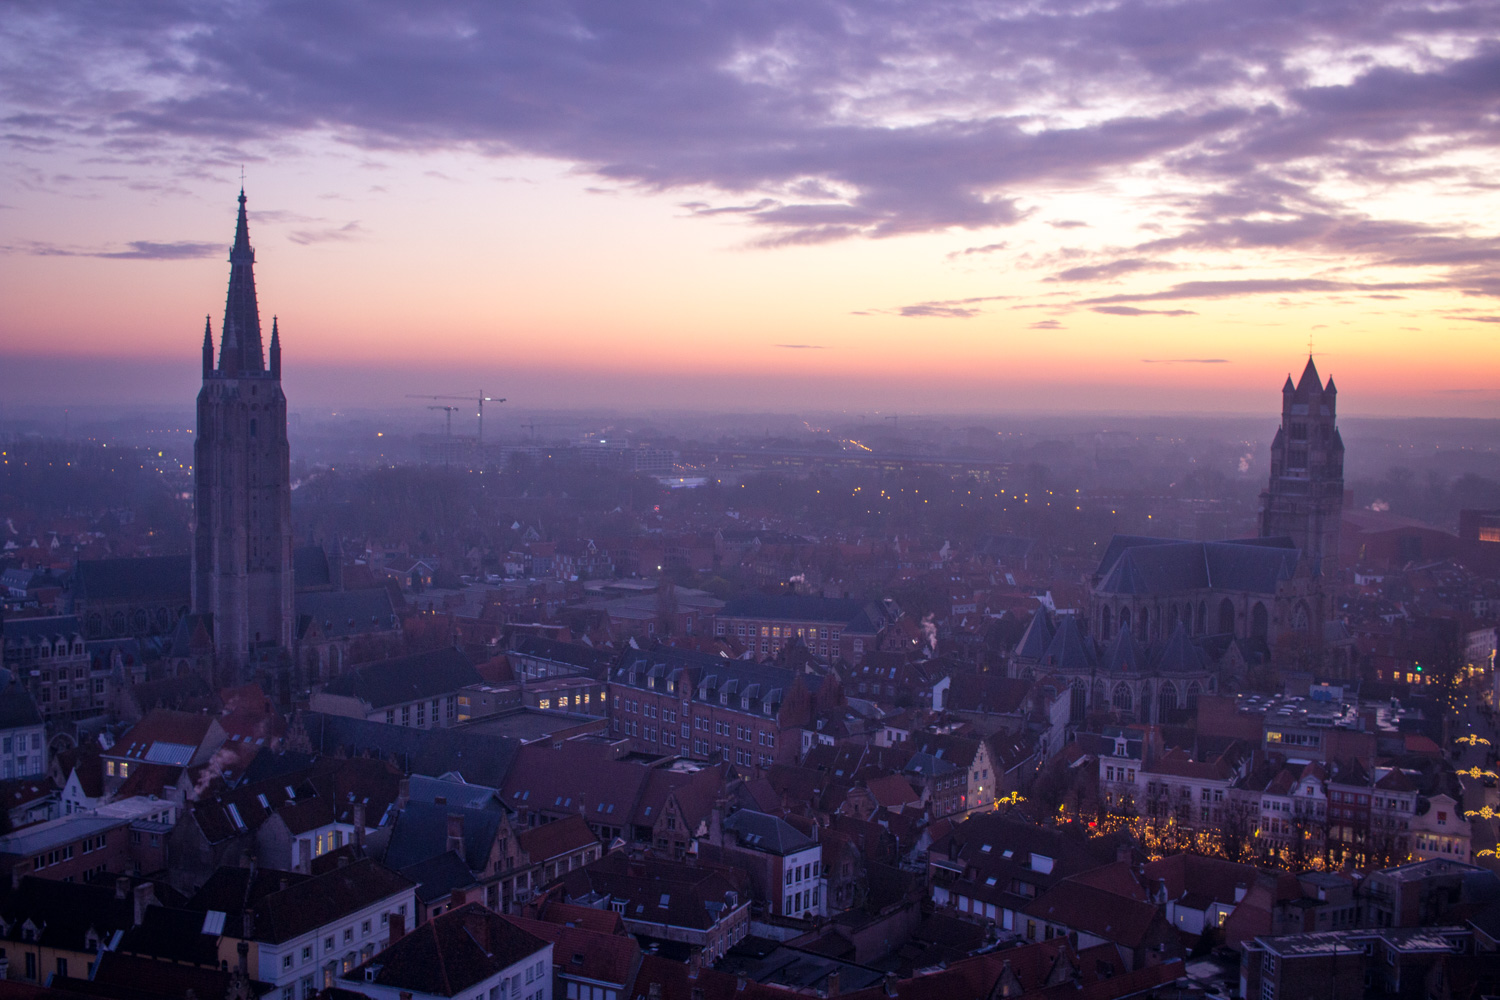 Sunset view of Bruges Belgium from Belfry Belfort